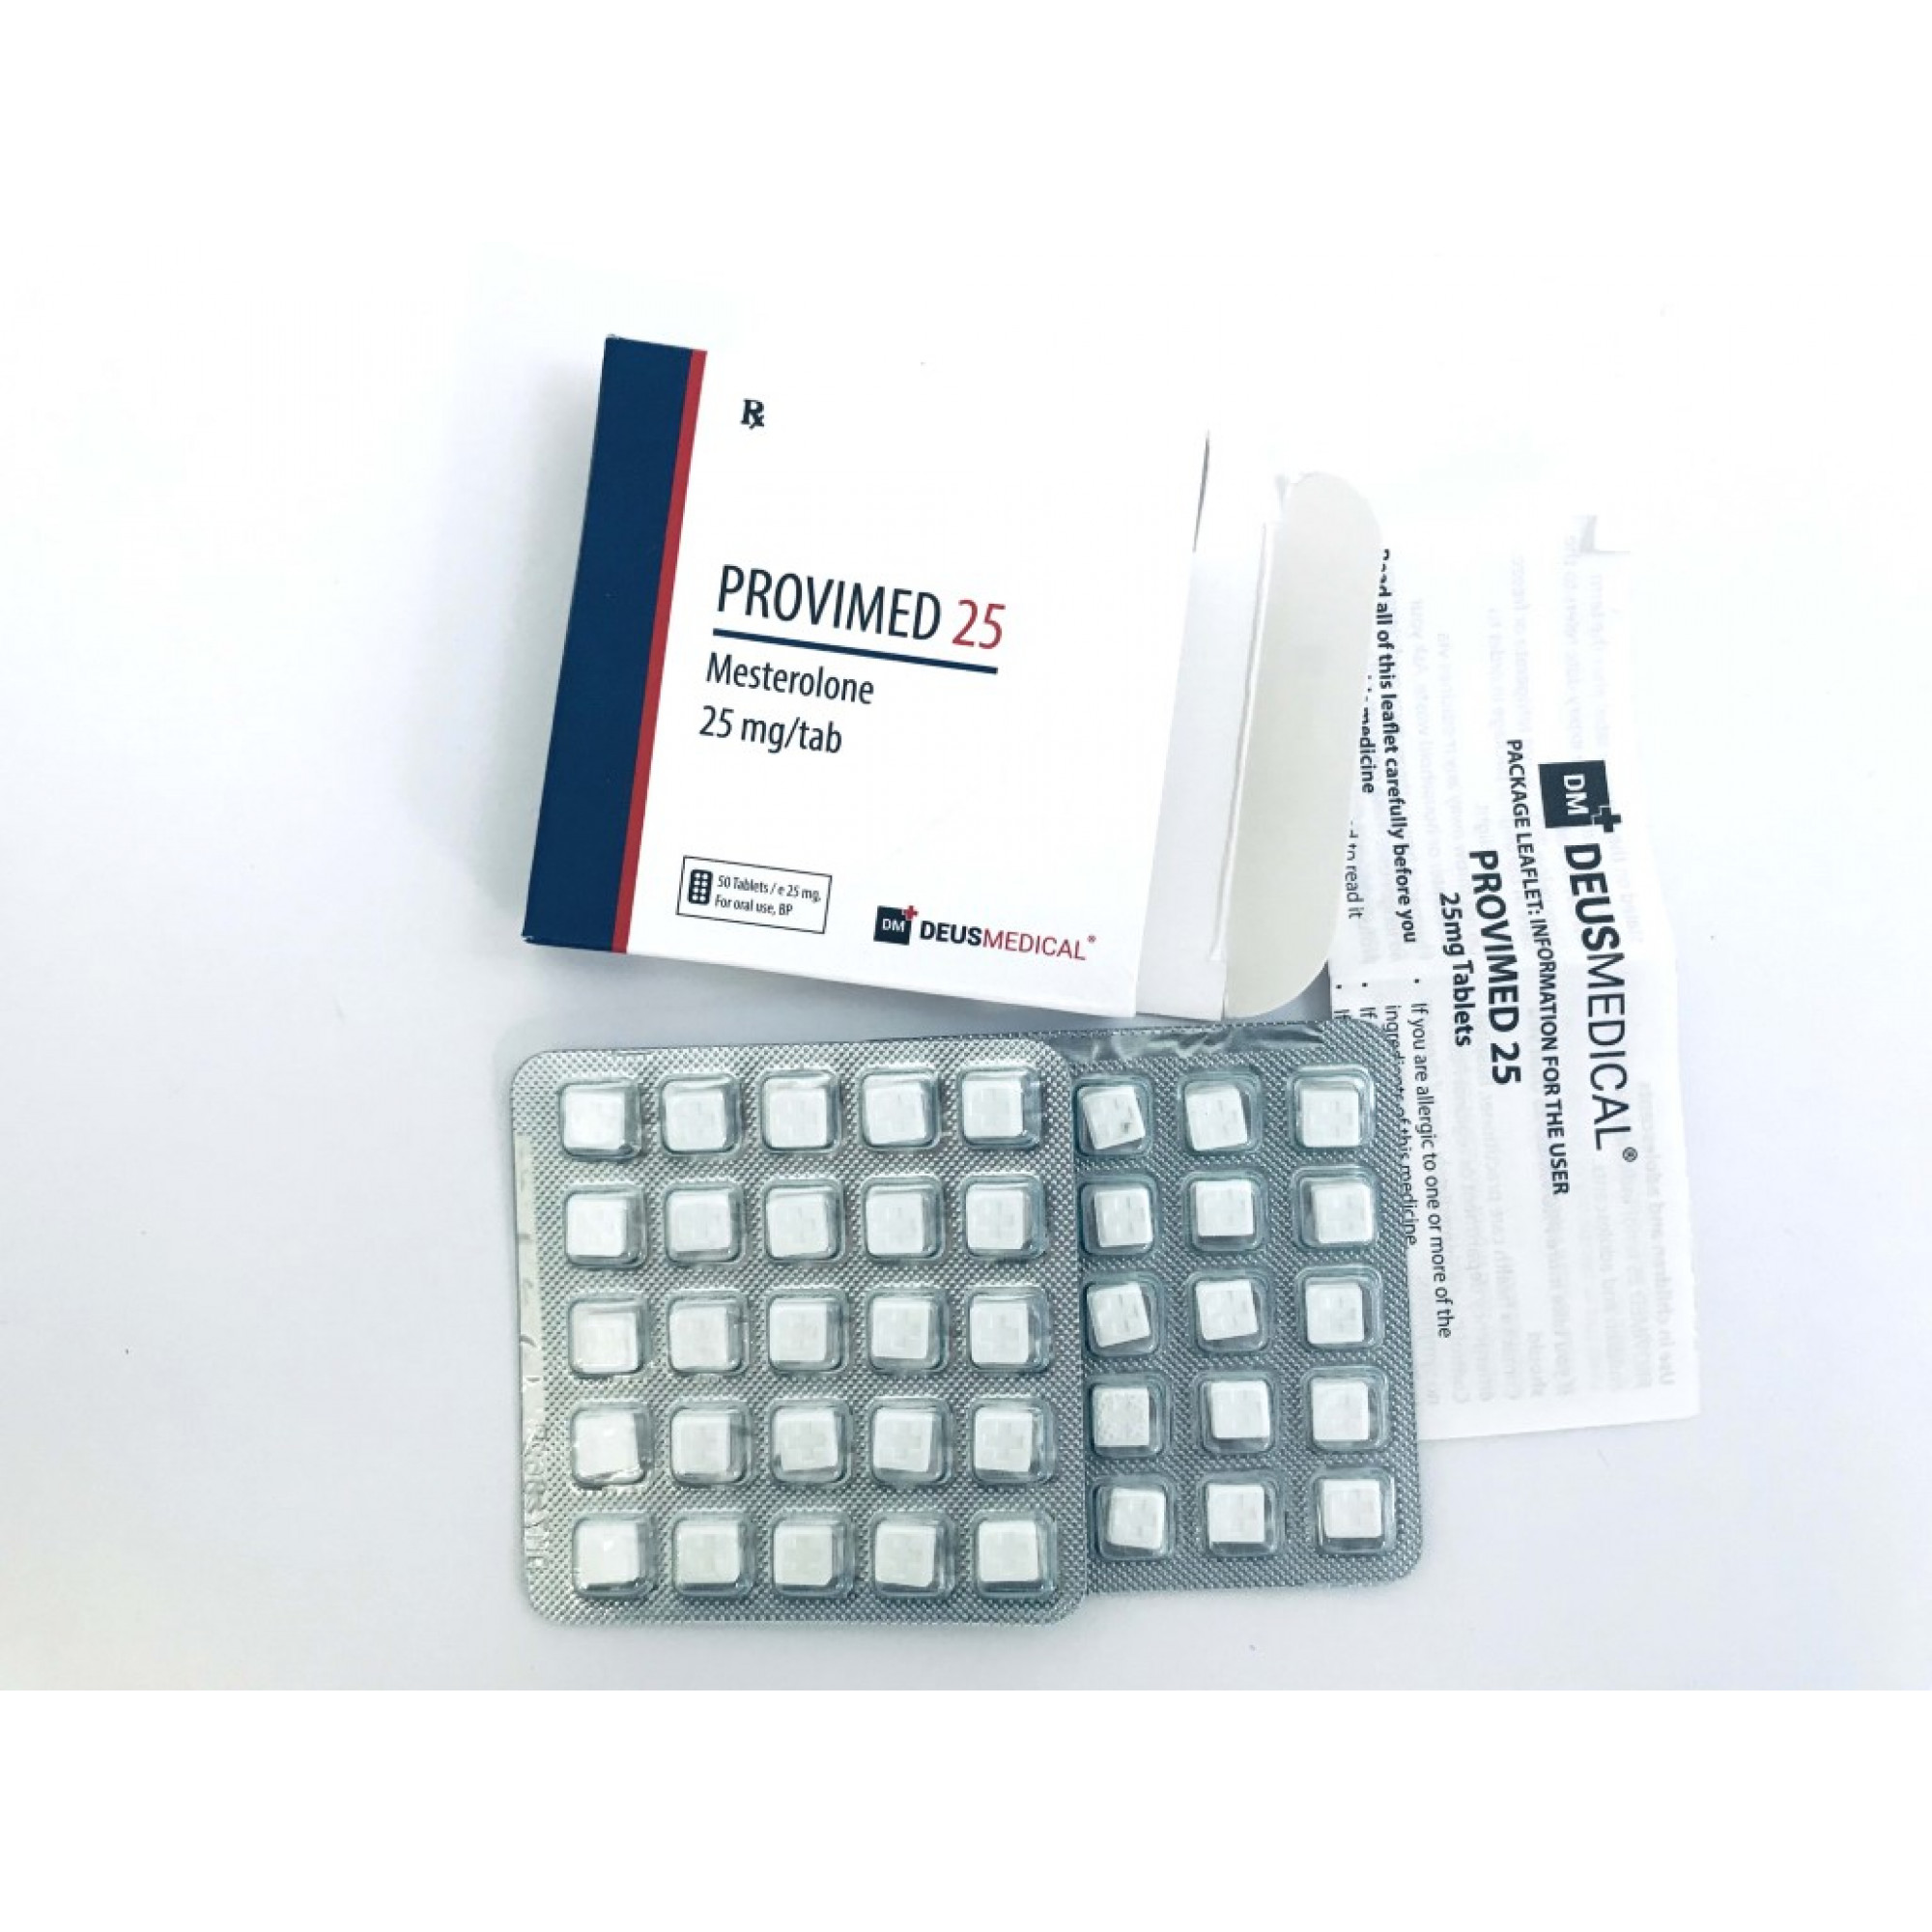 PROVIMED 25 (Mesterolone), DEUS MEDICAL, BUY STEROIDS ONLINE - www.DEUSPOWER.com